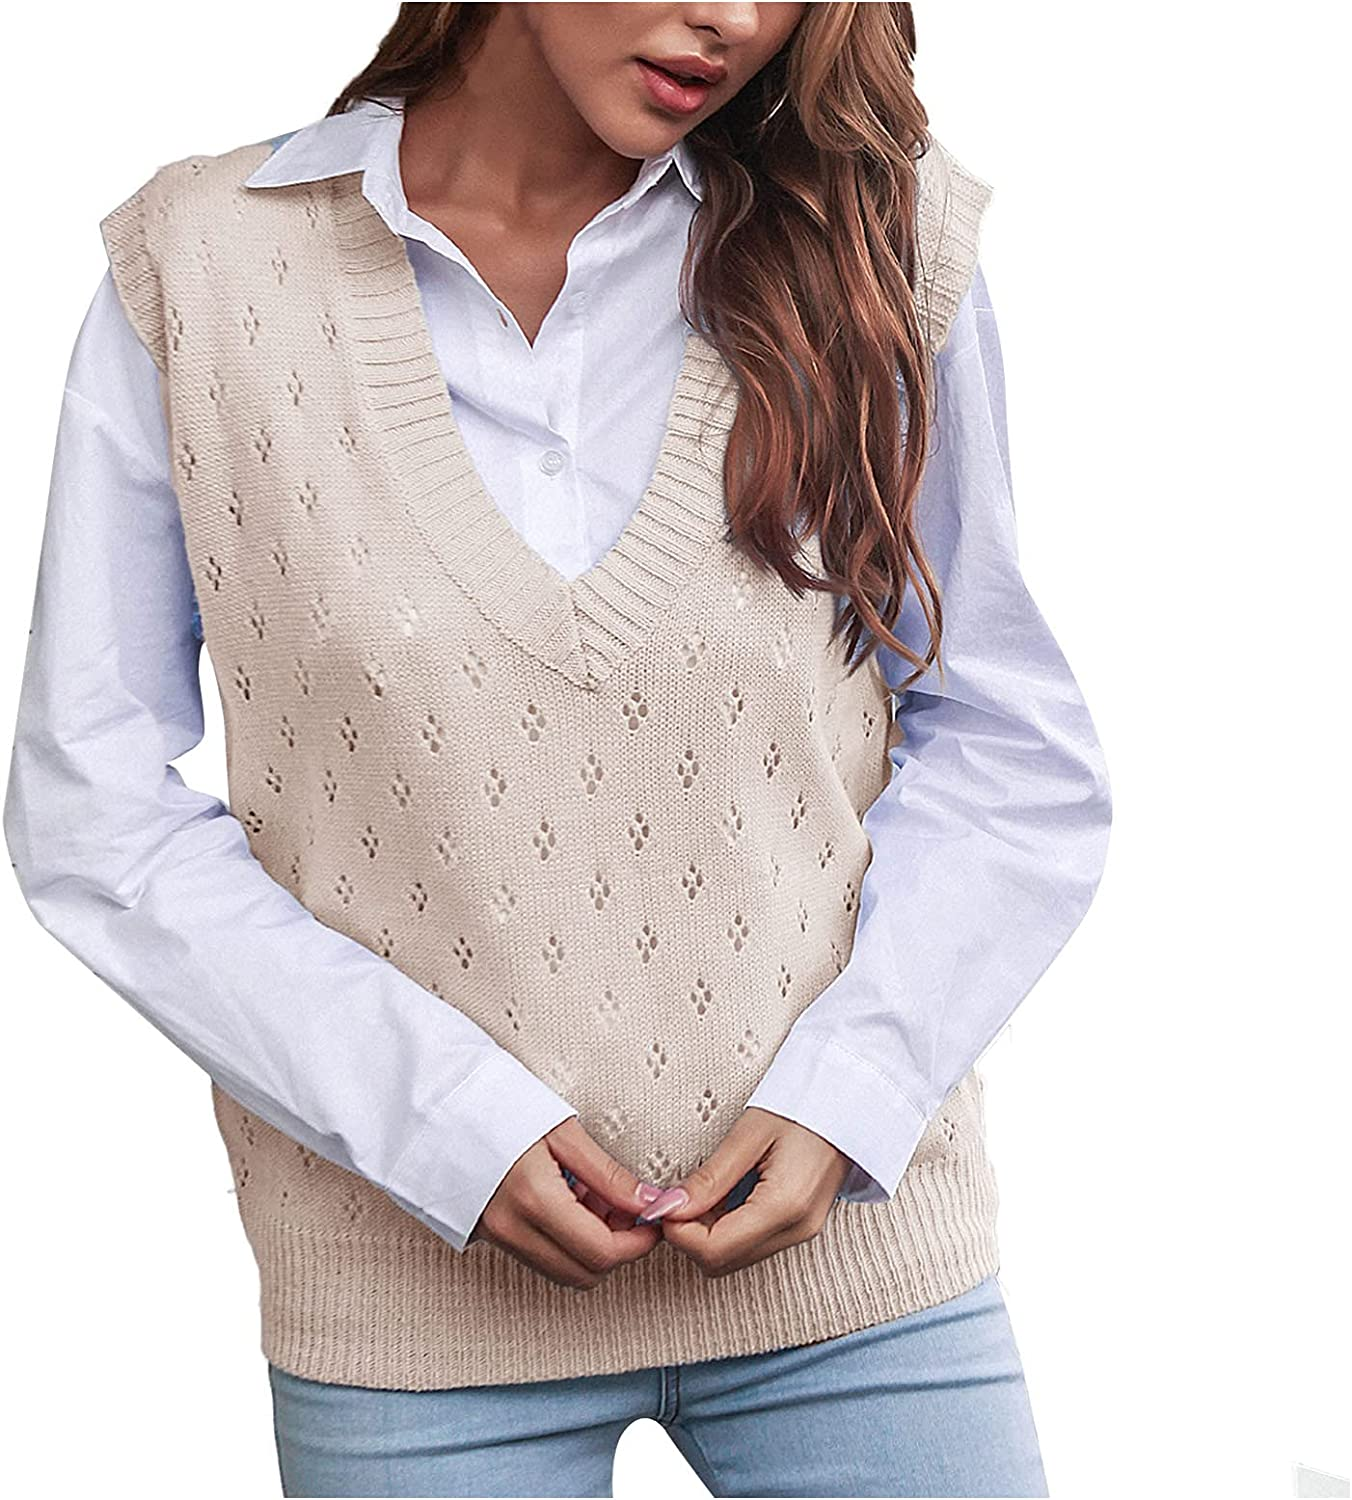 JMETRIE Womens Tops Knit Long Sleeves Crop Sweater Loose Knitted Pullover Winter Sweater Vest